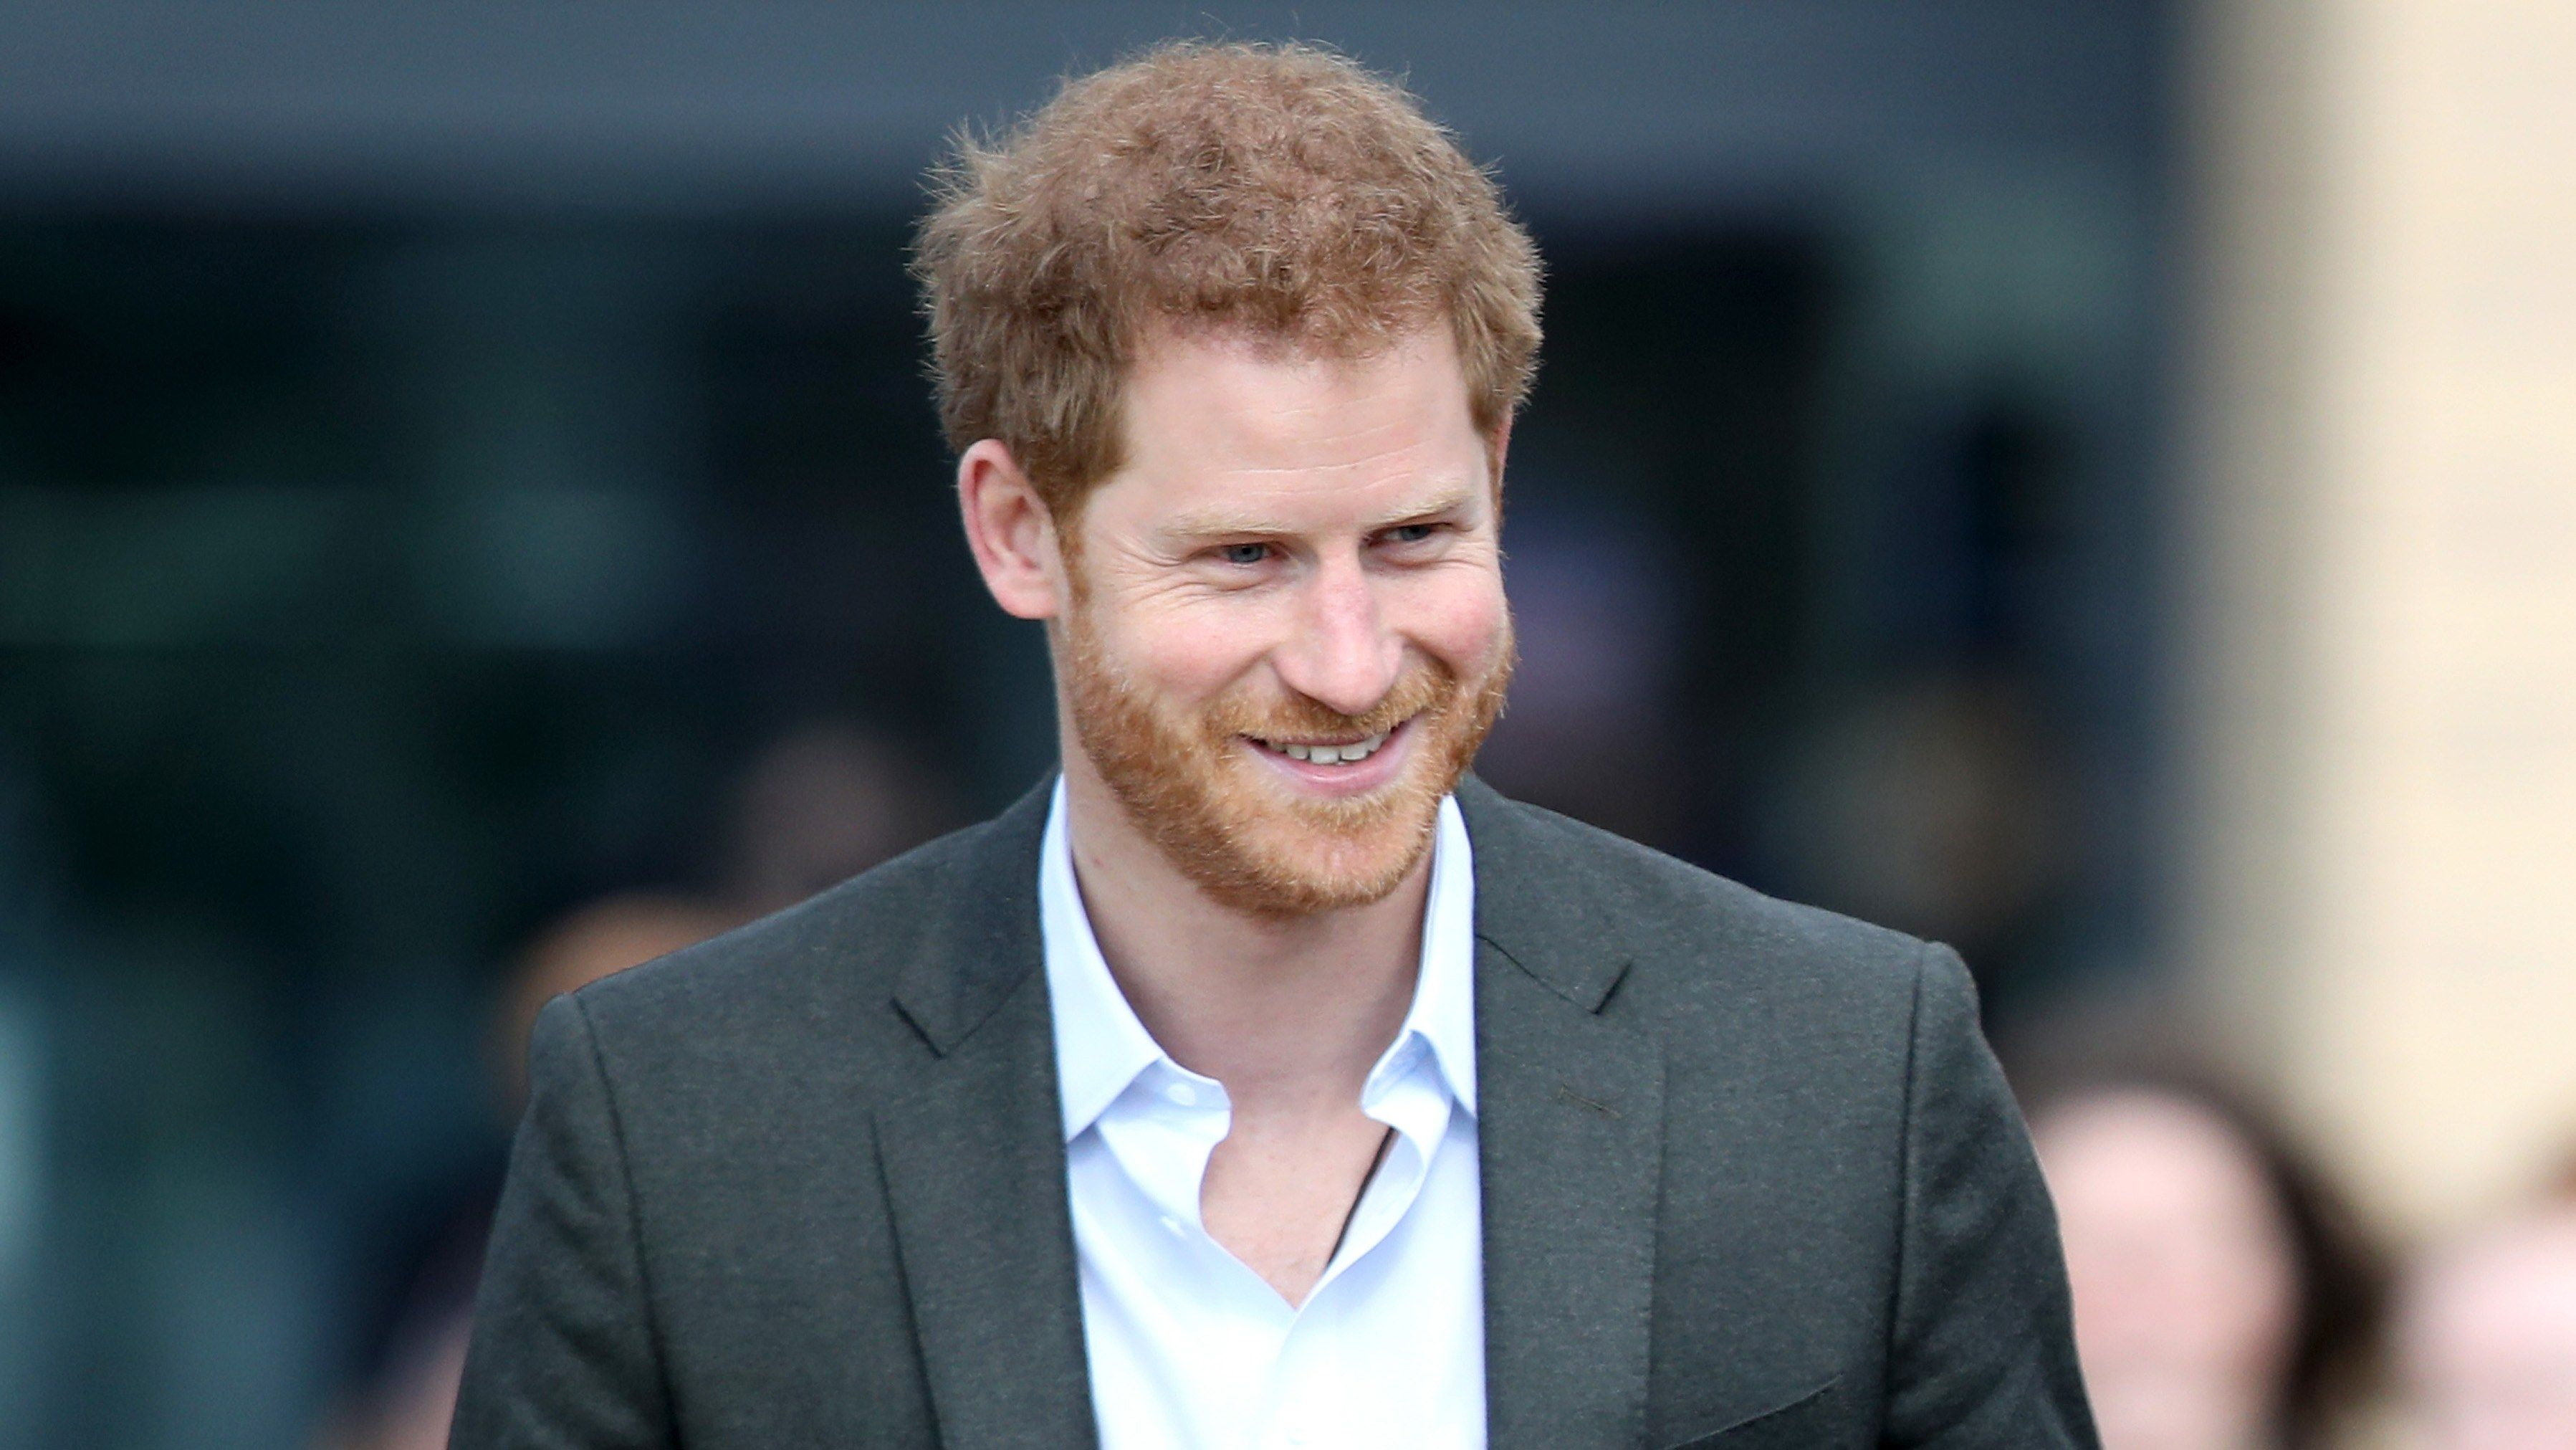 Prince Harry Was 'Close to a Complete Breakdown' in Years Following Princess Diana's Death